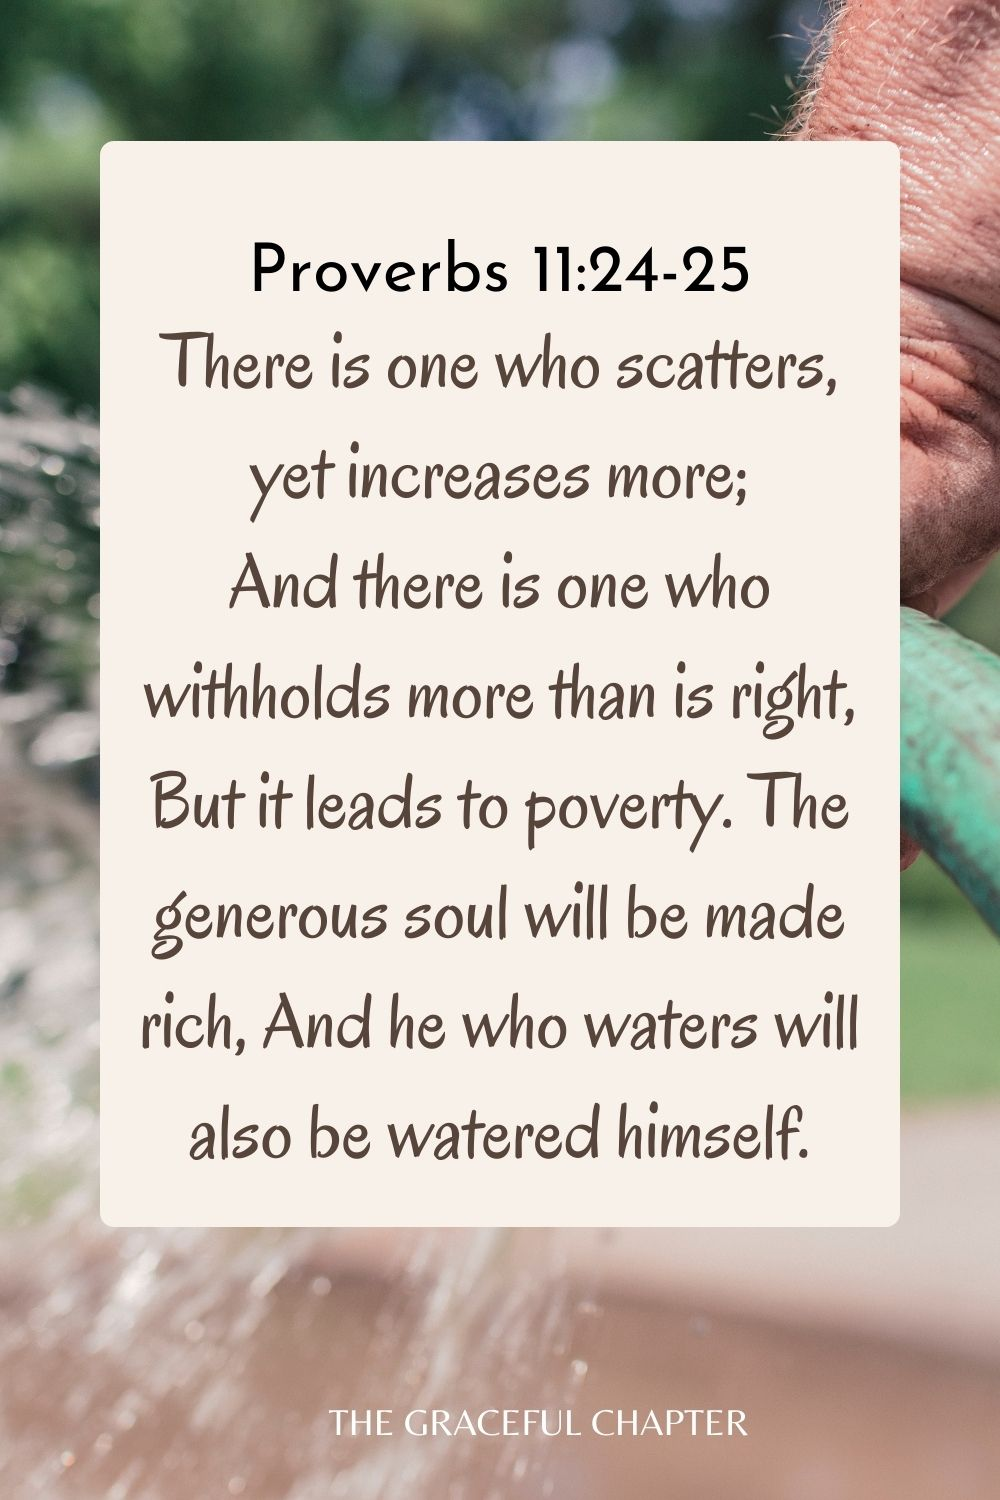 There is one who scatters, yet increases more; And there is one who withholds more than is right, But it leads to poverty. The generous soul will be made rich, And he who waters will also be watered himself. Proverbs 11:24-25